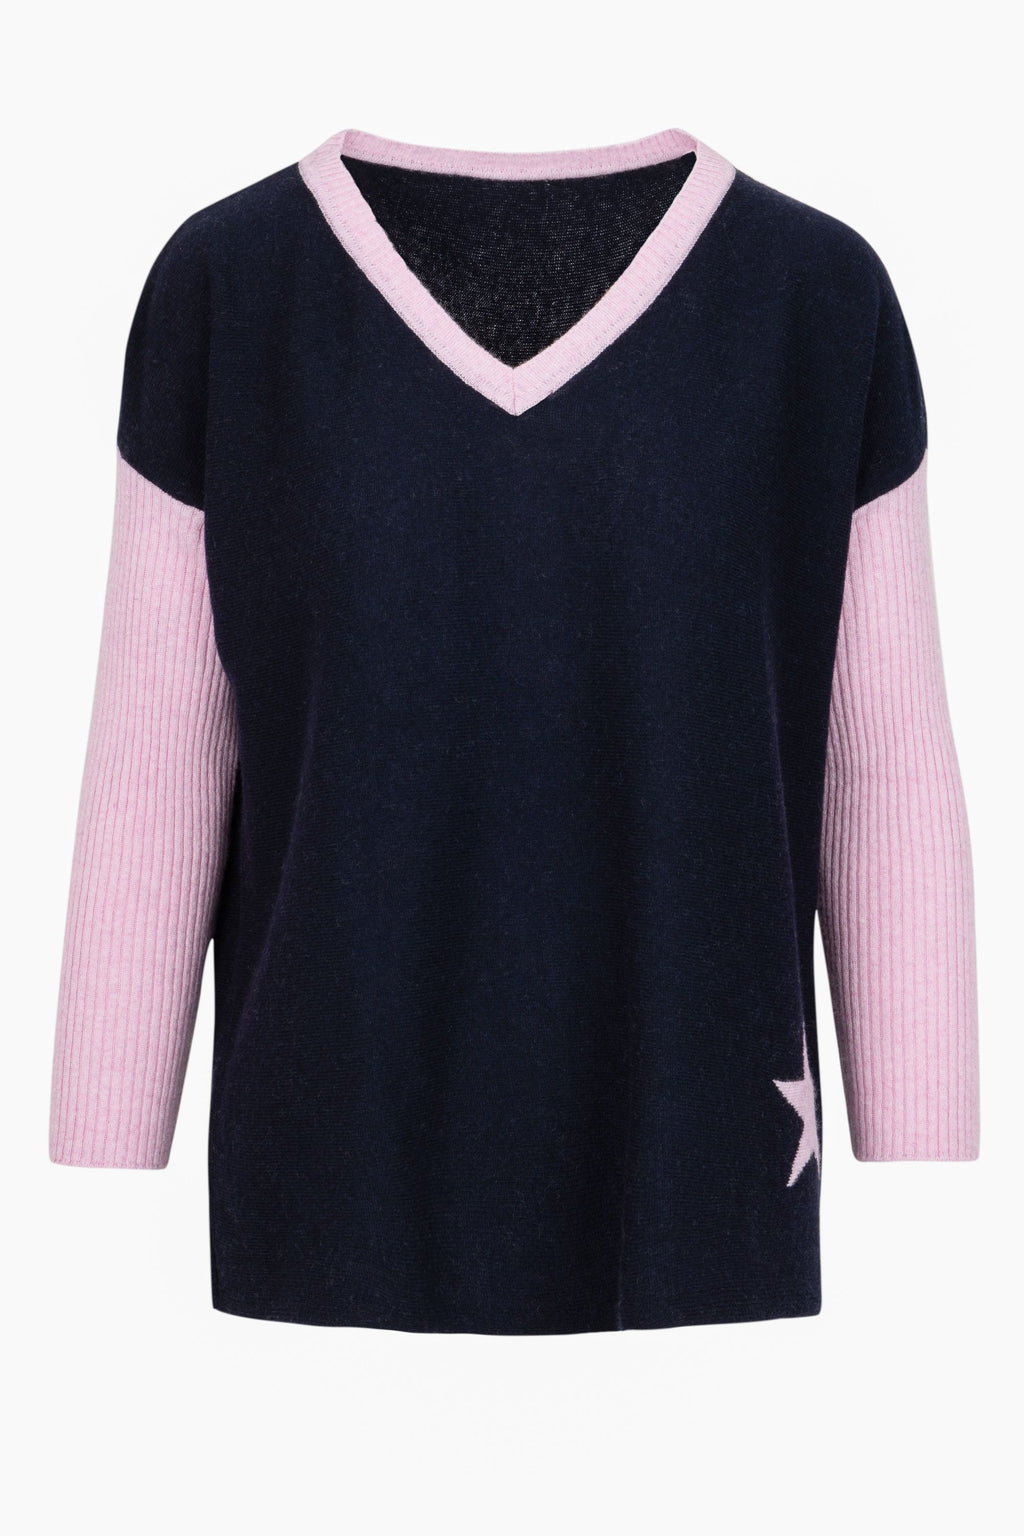 Cashmere Sweater- Baby Pink Star